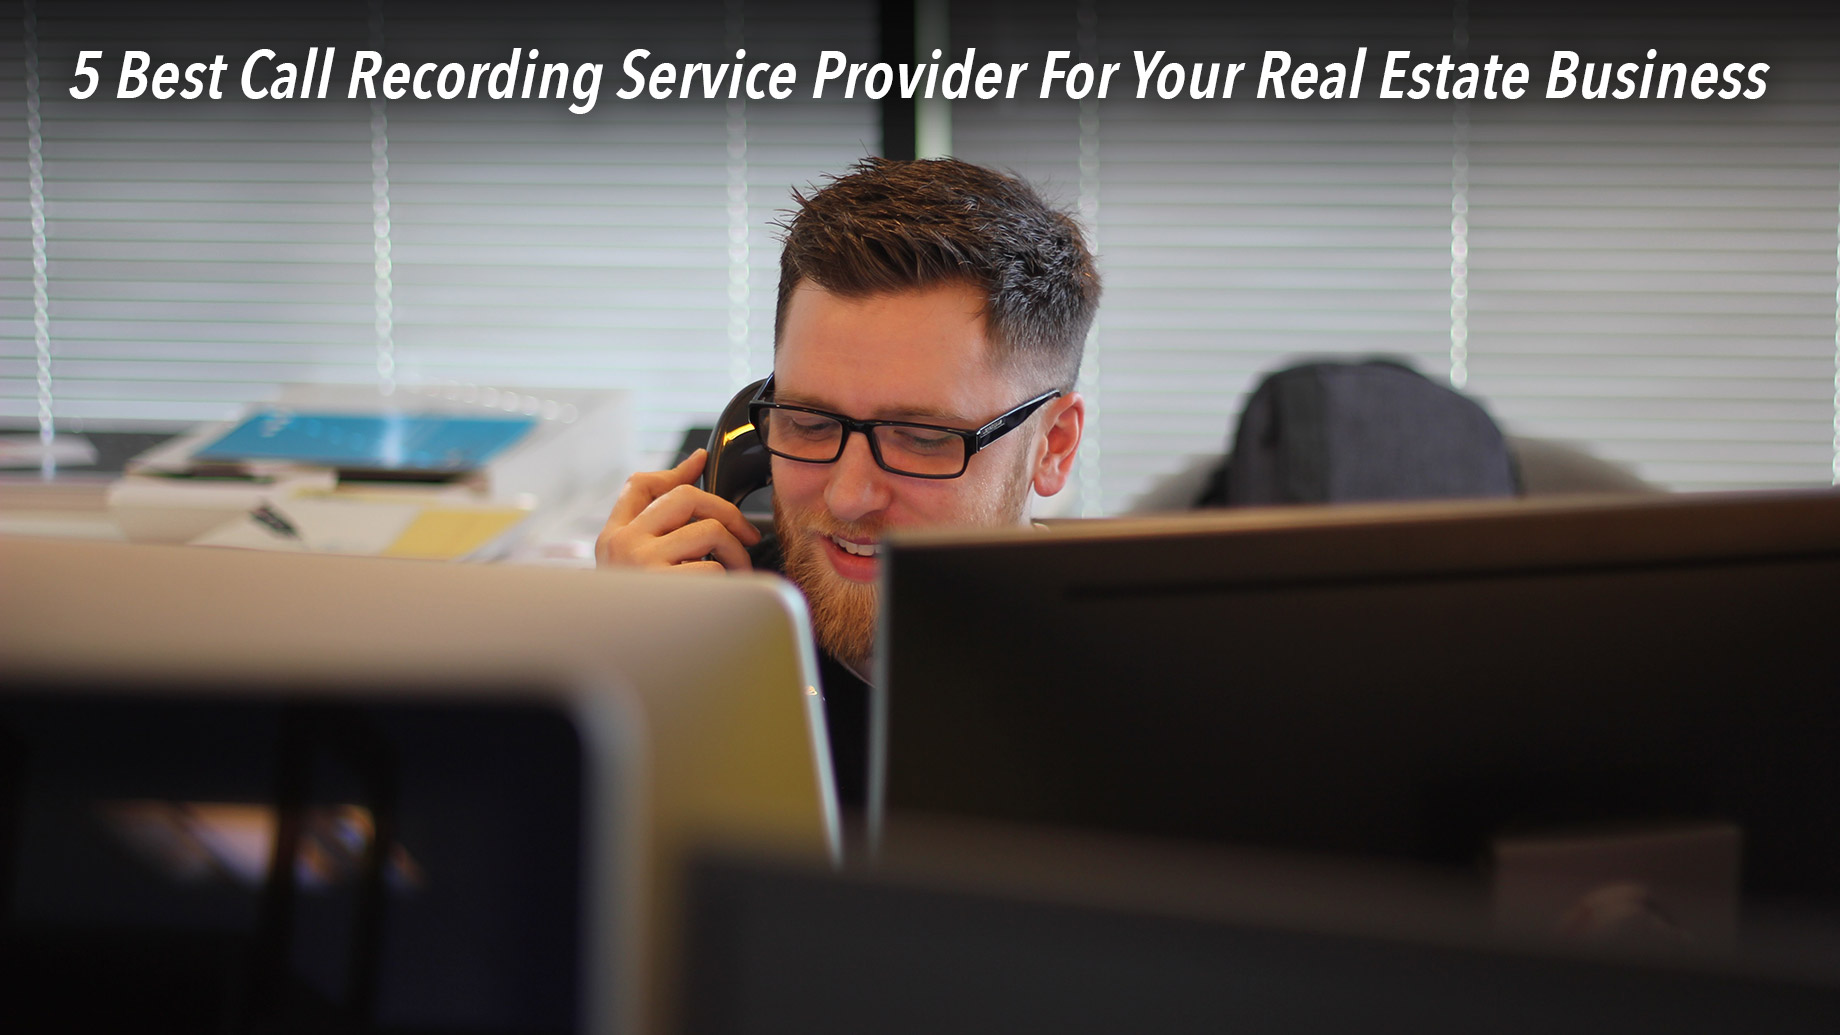 5 Best Call Recording Service Provider For Your Real Estate Business